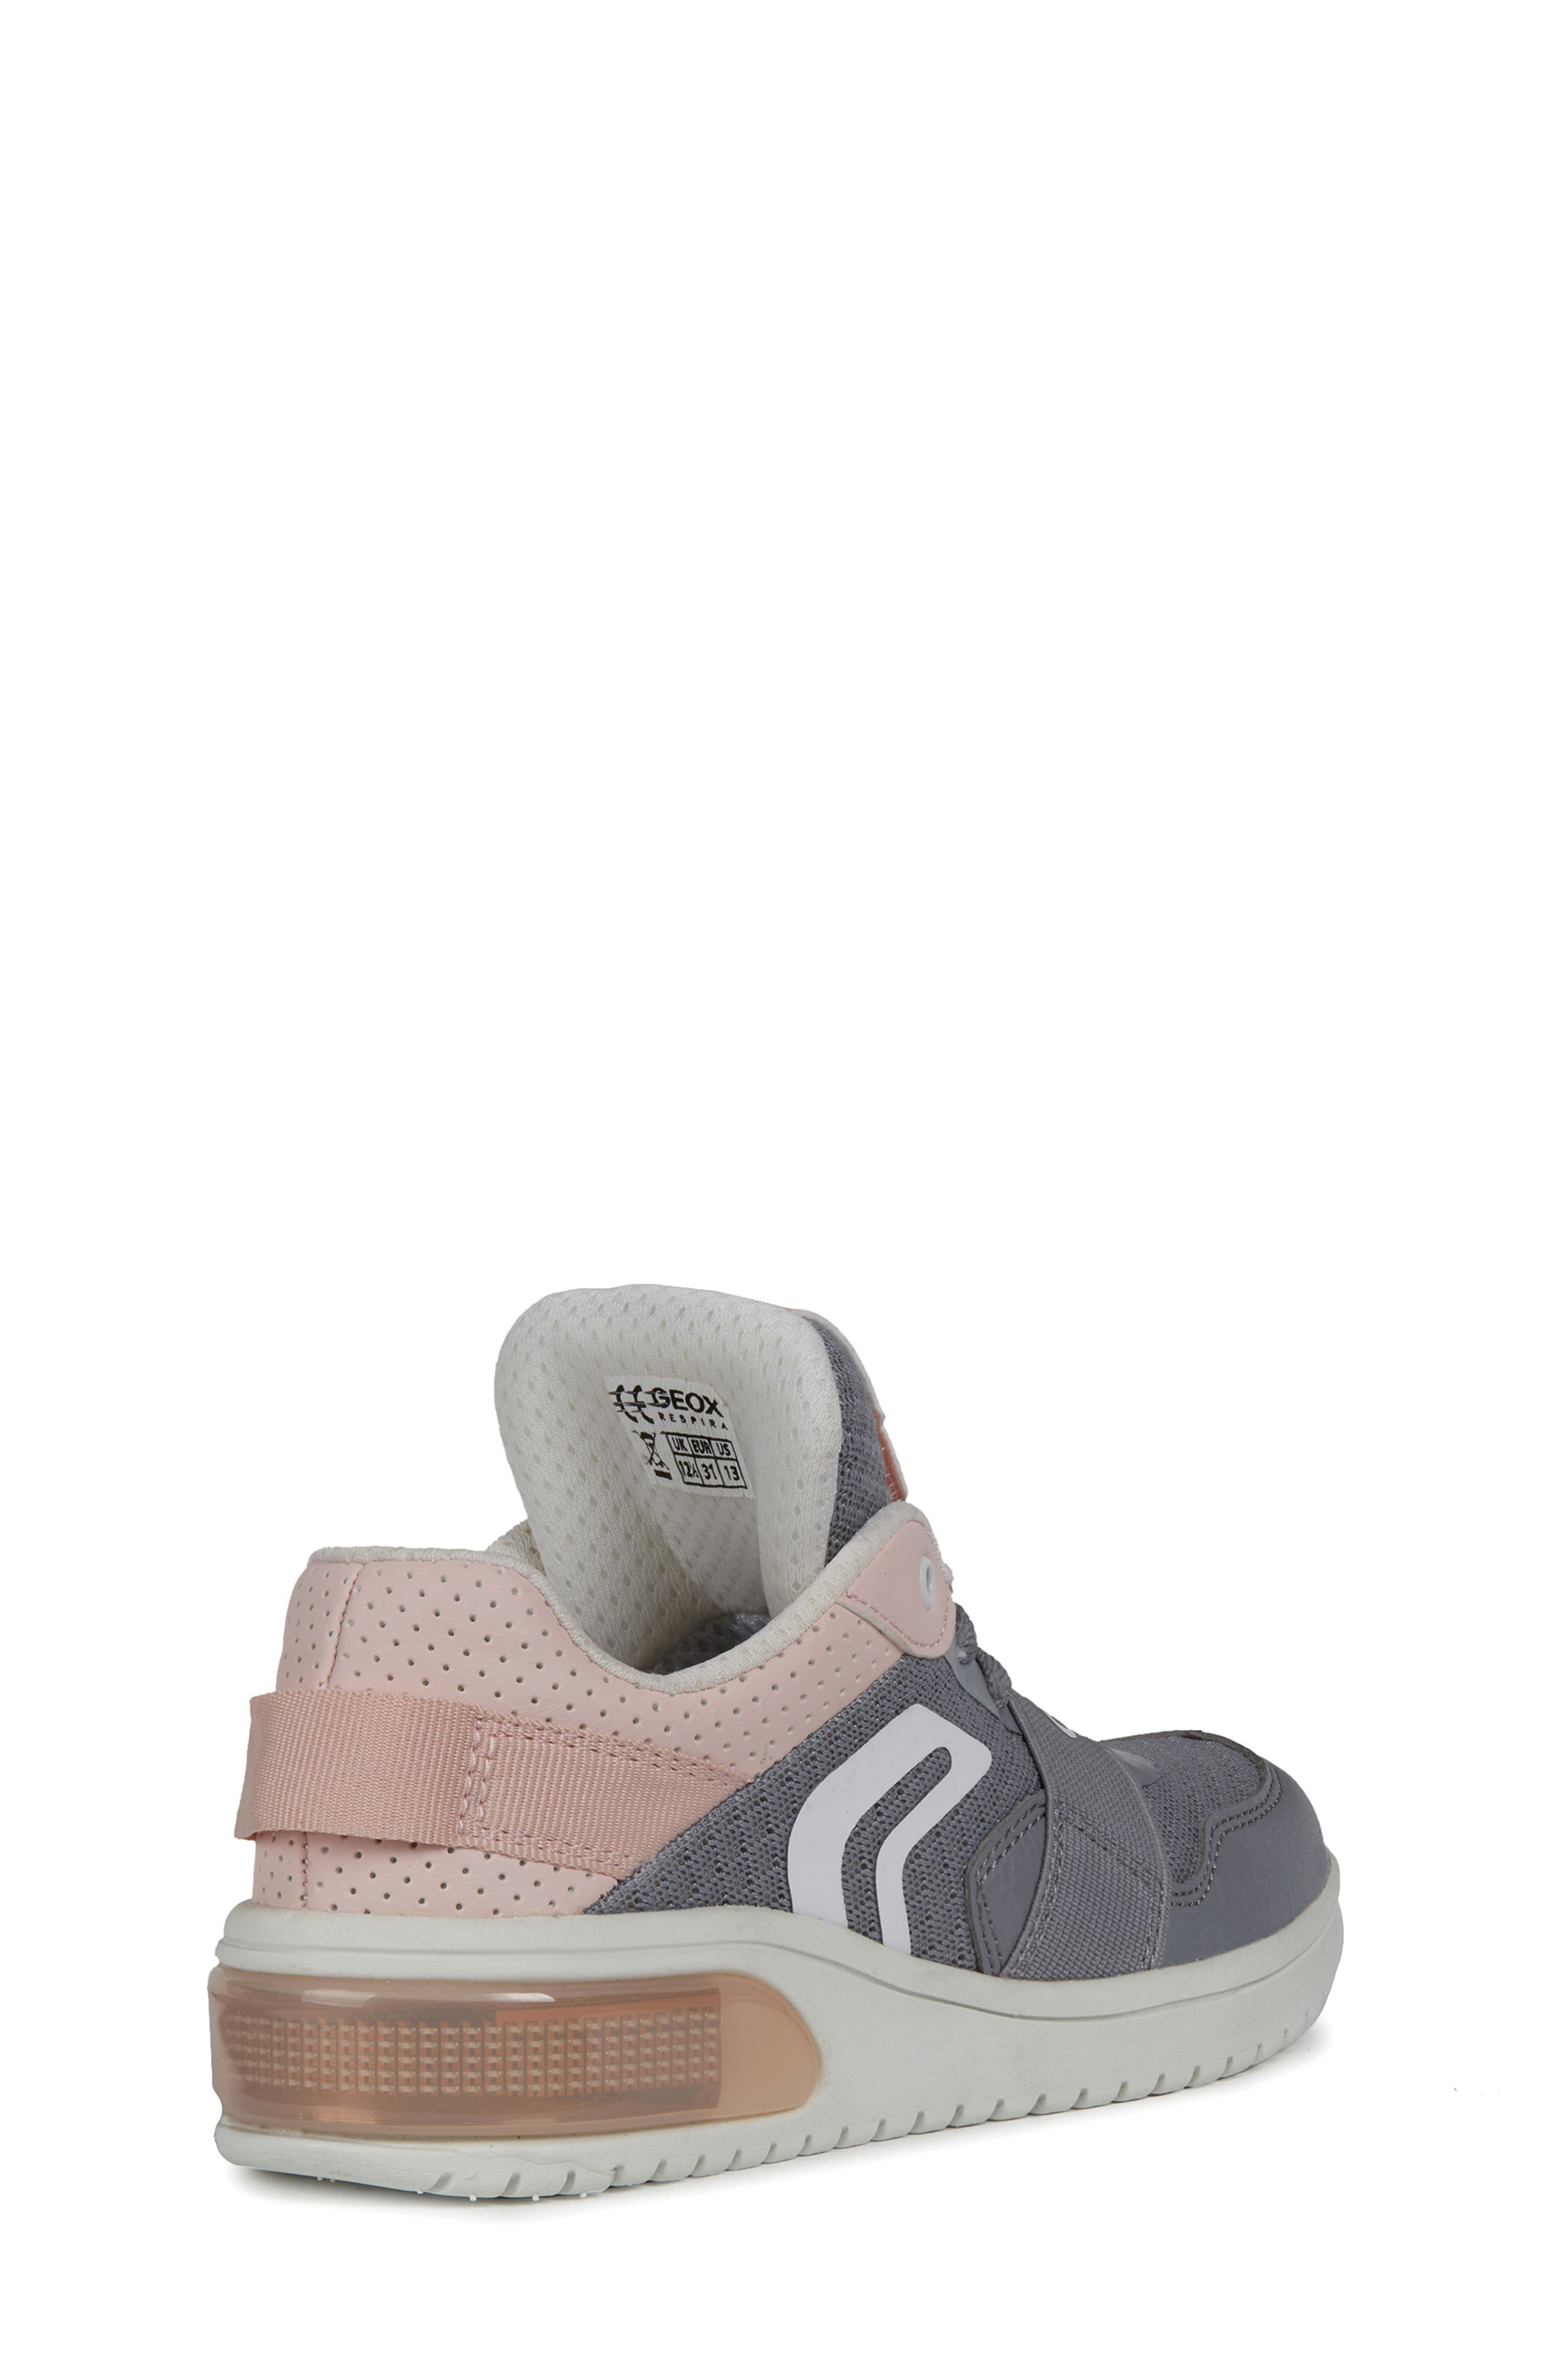 79e4bee98fcd Big Boys  Geox Shoes (Sizes 3.5-7)